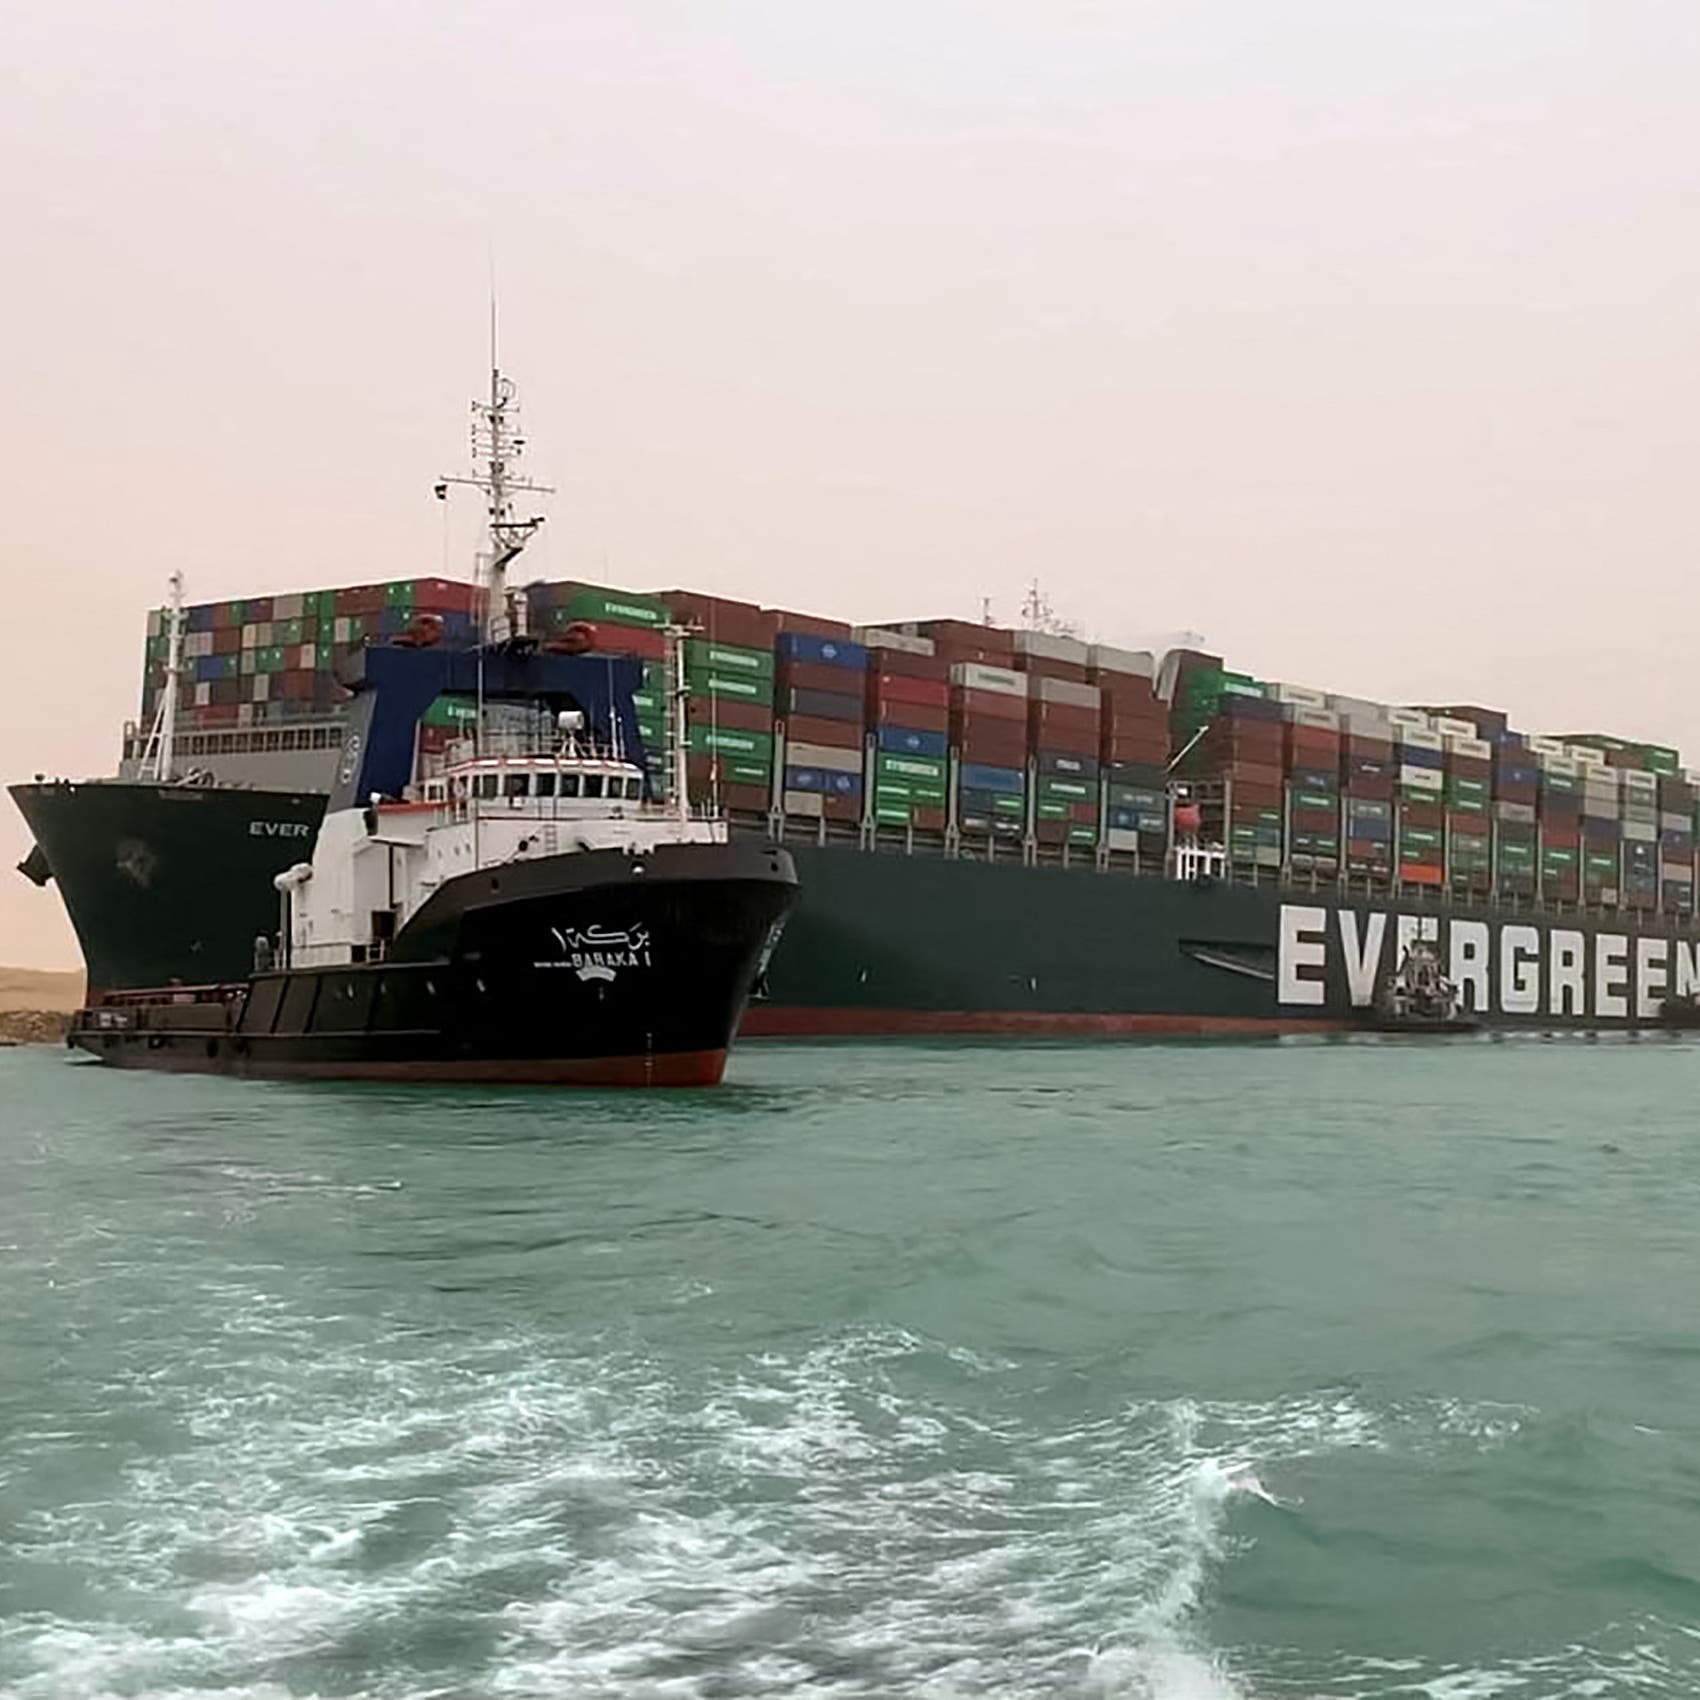 Giant ship stuck in Suez Canal inspires wave of memes, gifs on social media